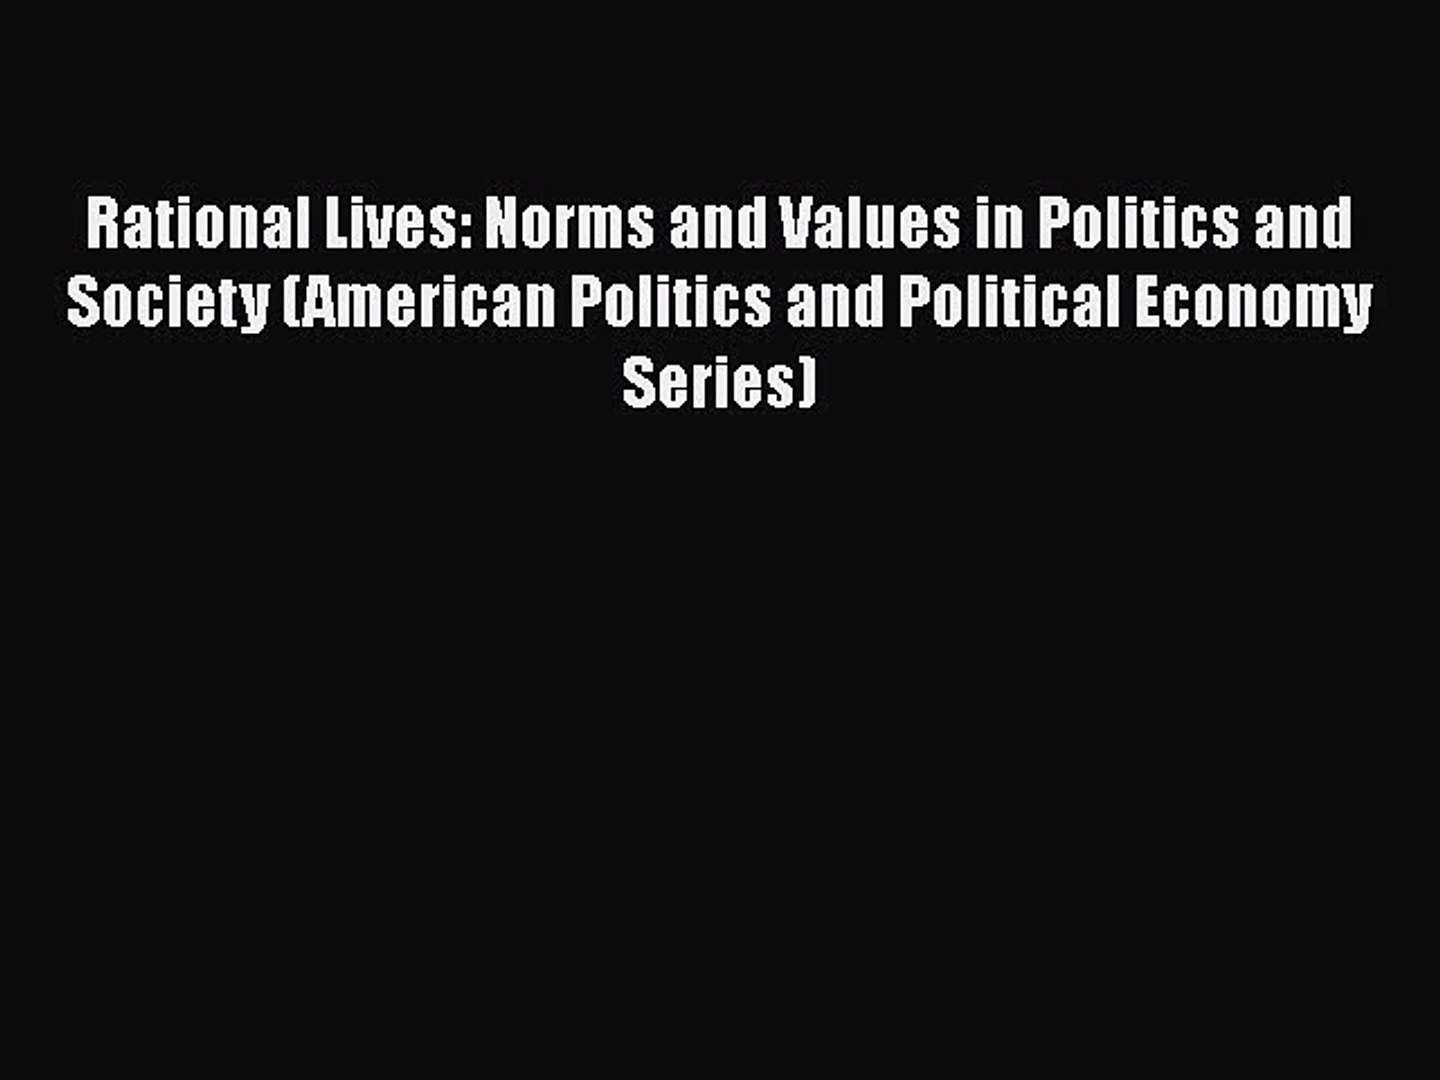 [Read] Rational Lives: Norms and Values in Politics and Society (American Politics and Political